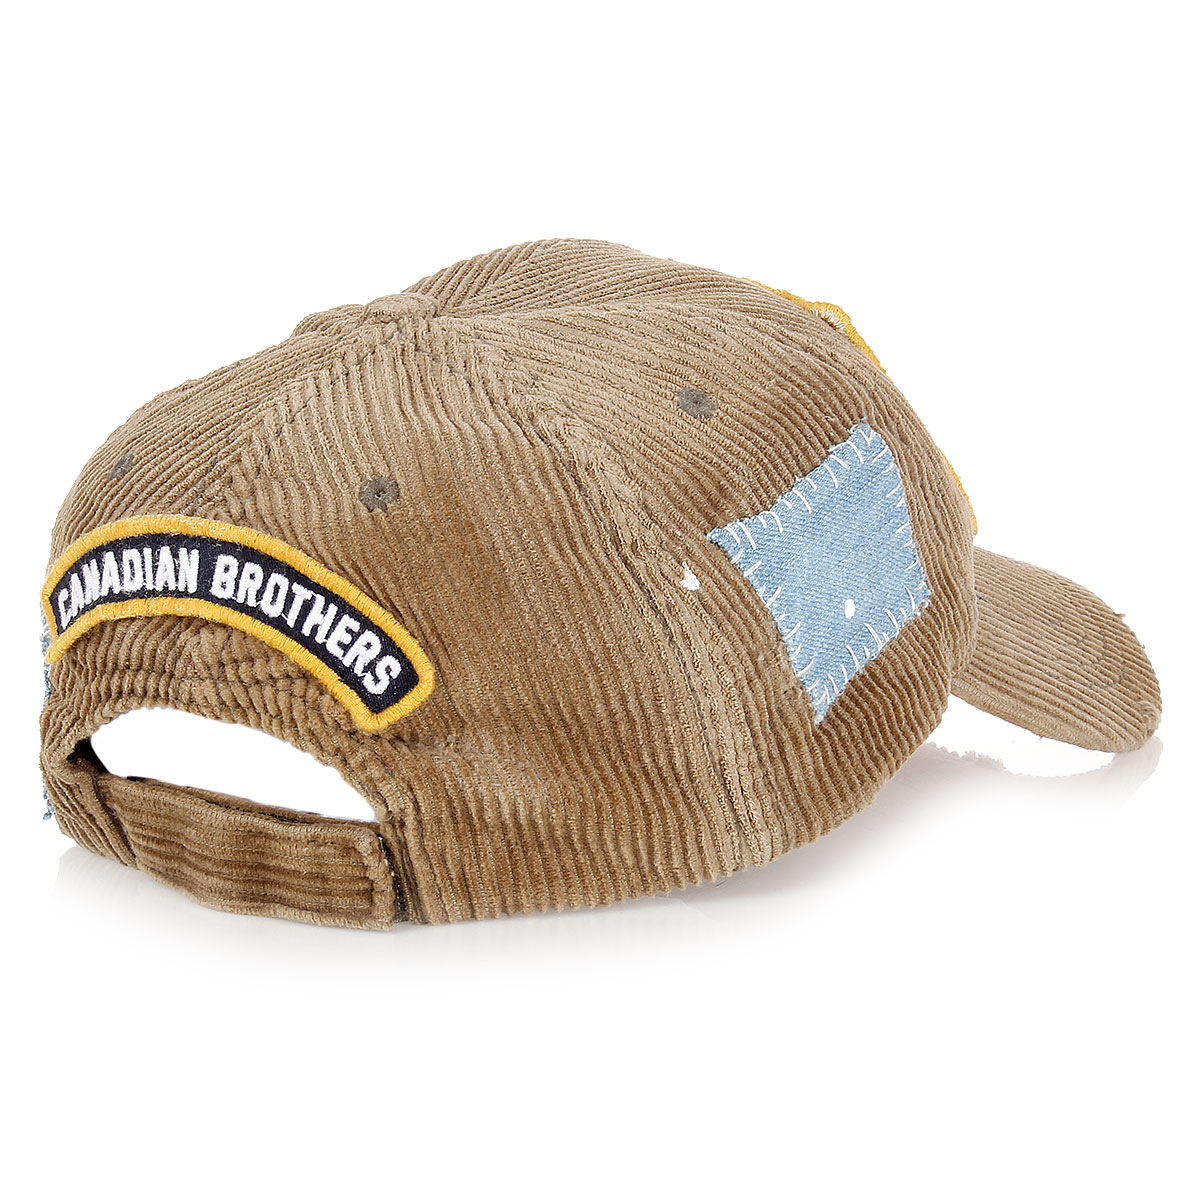 dsquared2 corduroy baseball cap hat spence outlet